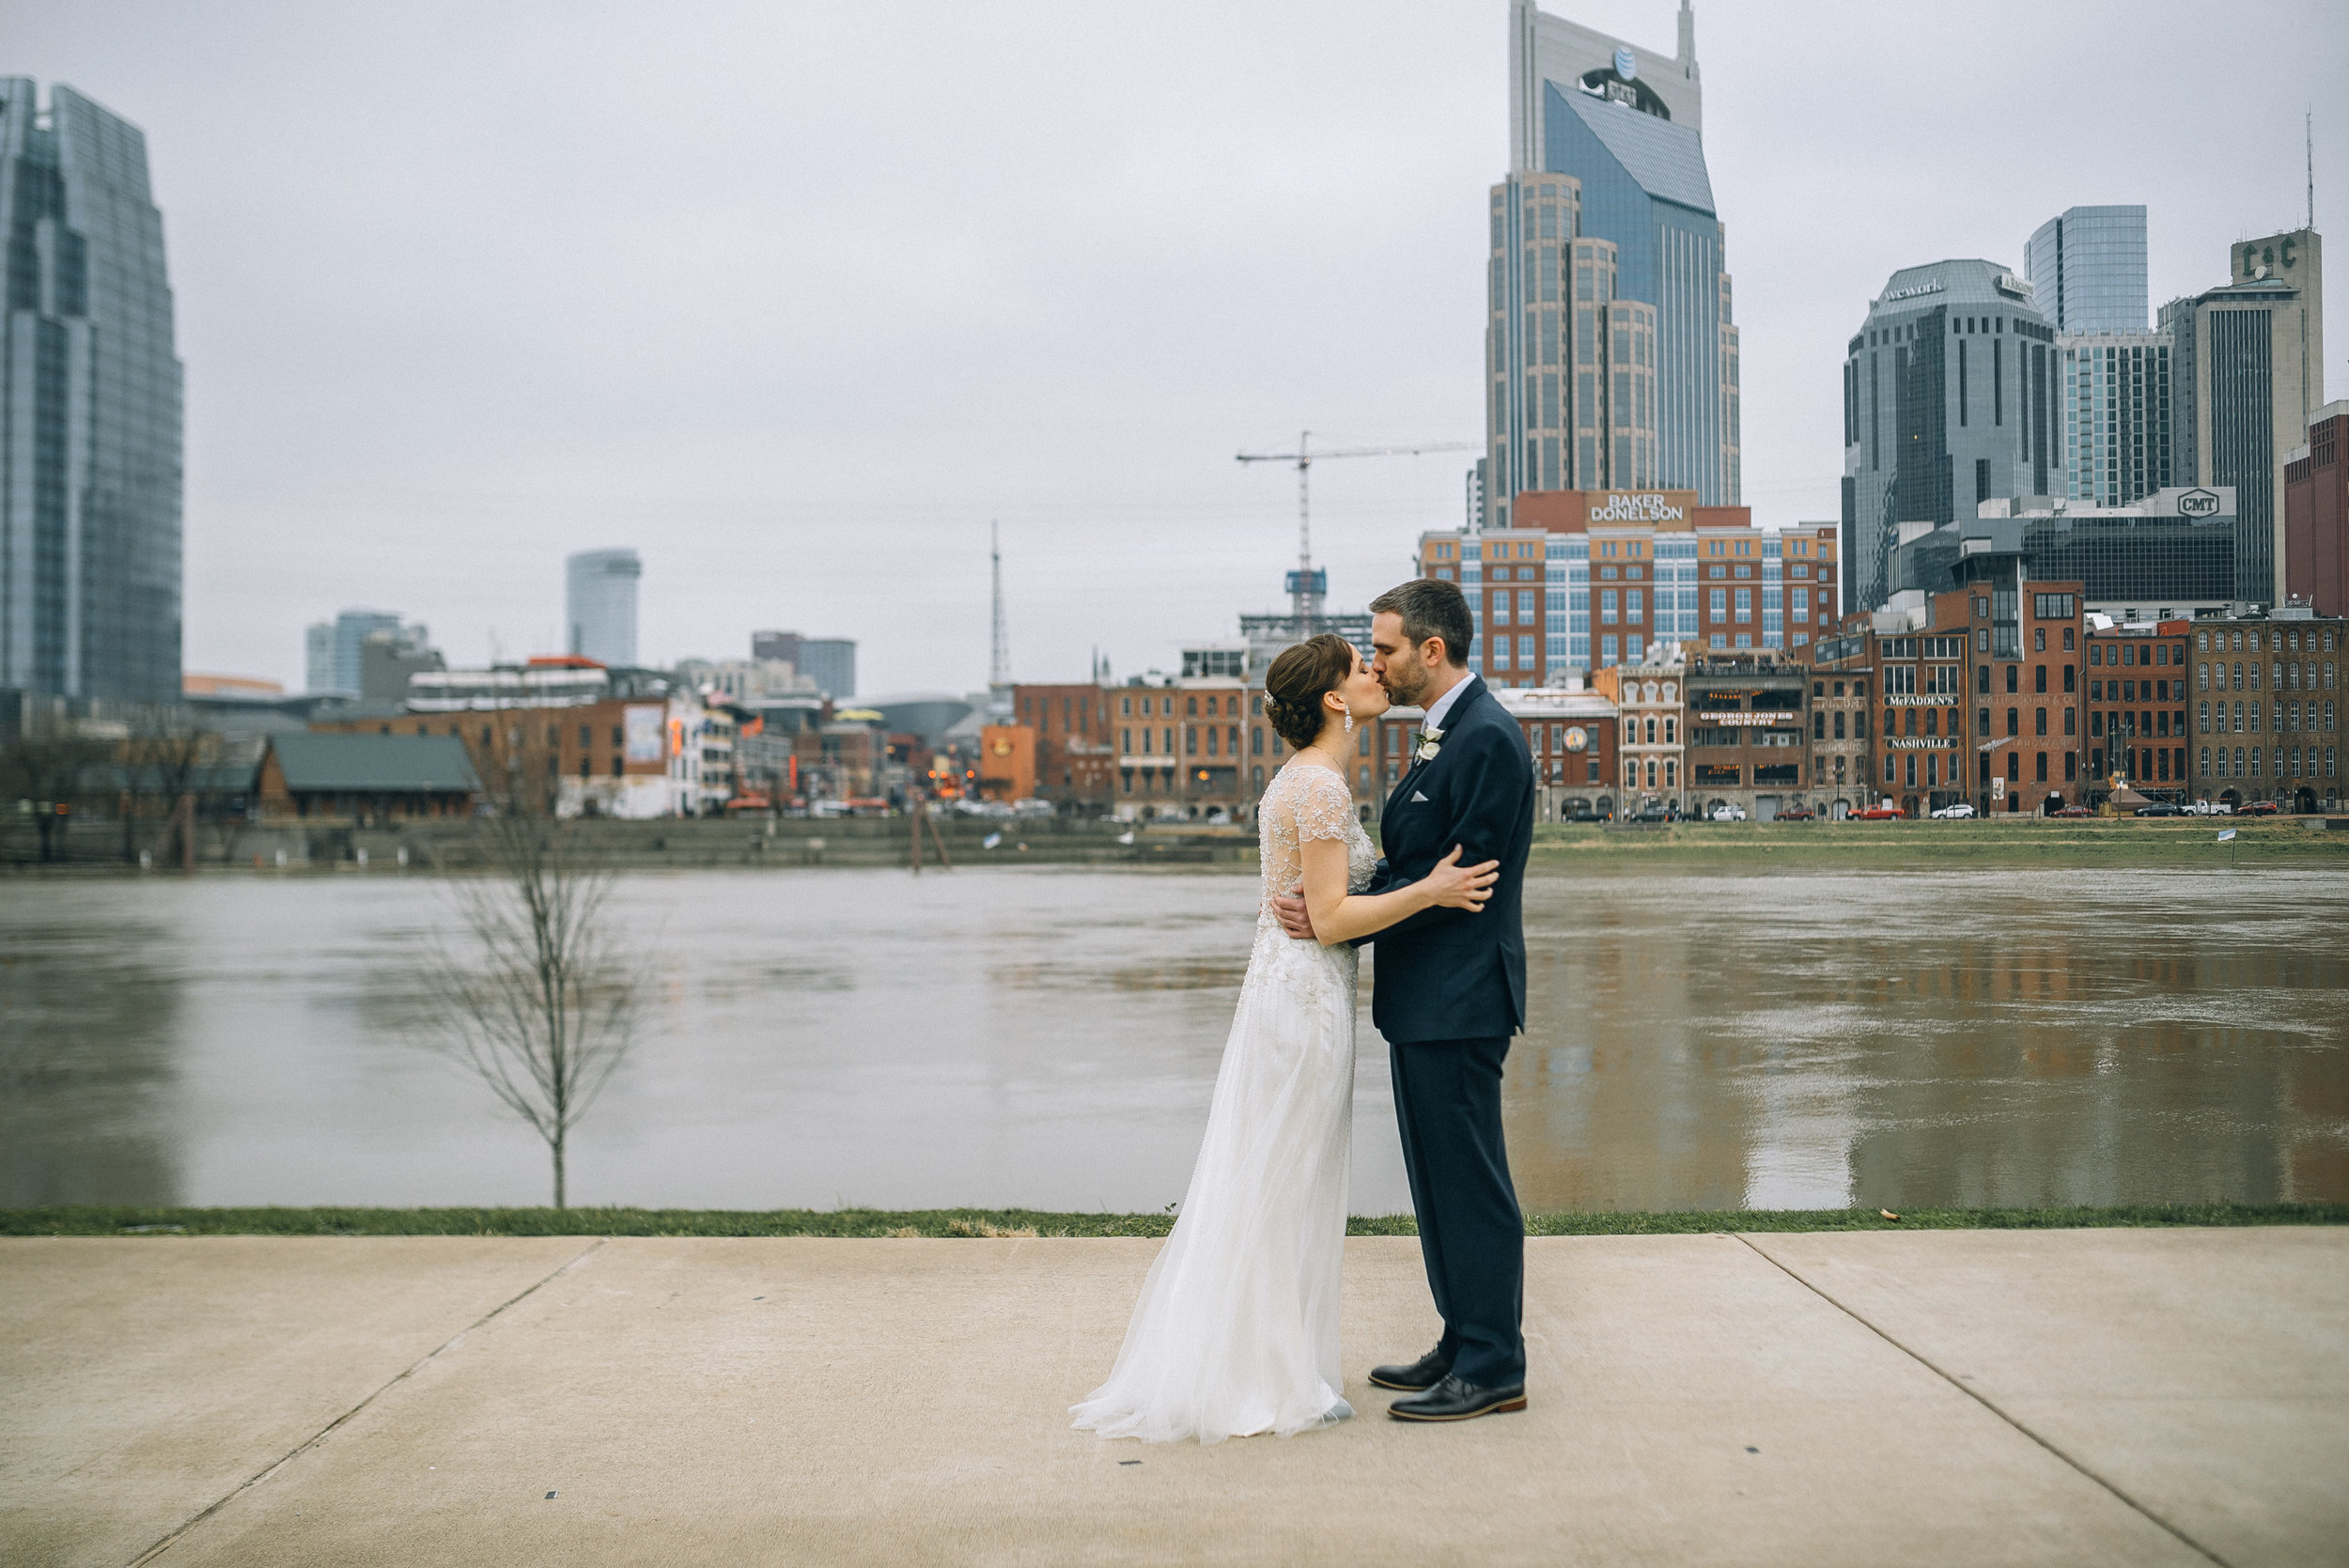 Details Nashville - Sarah + William - wedding